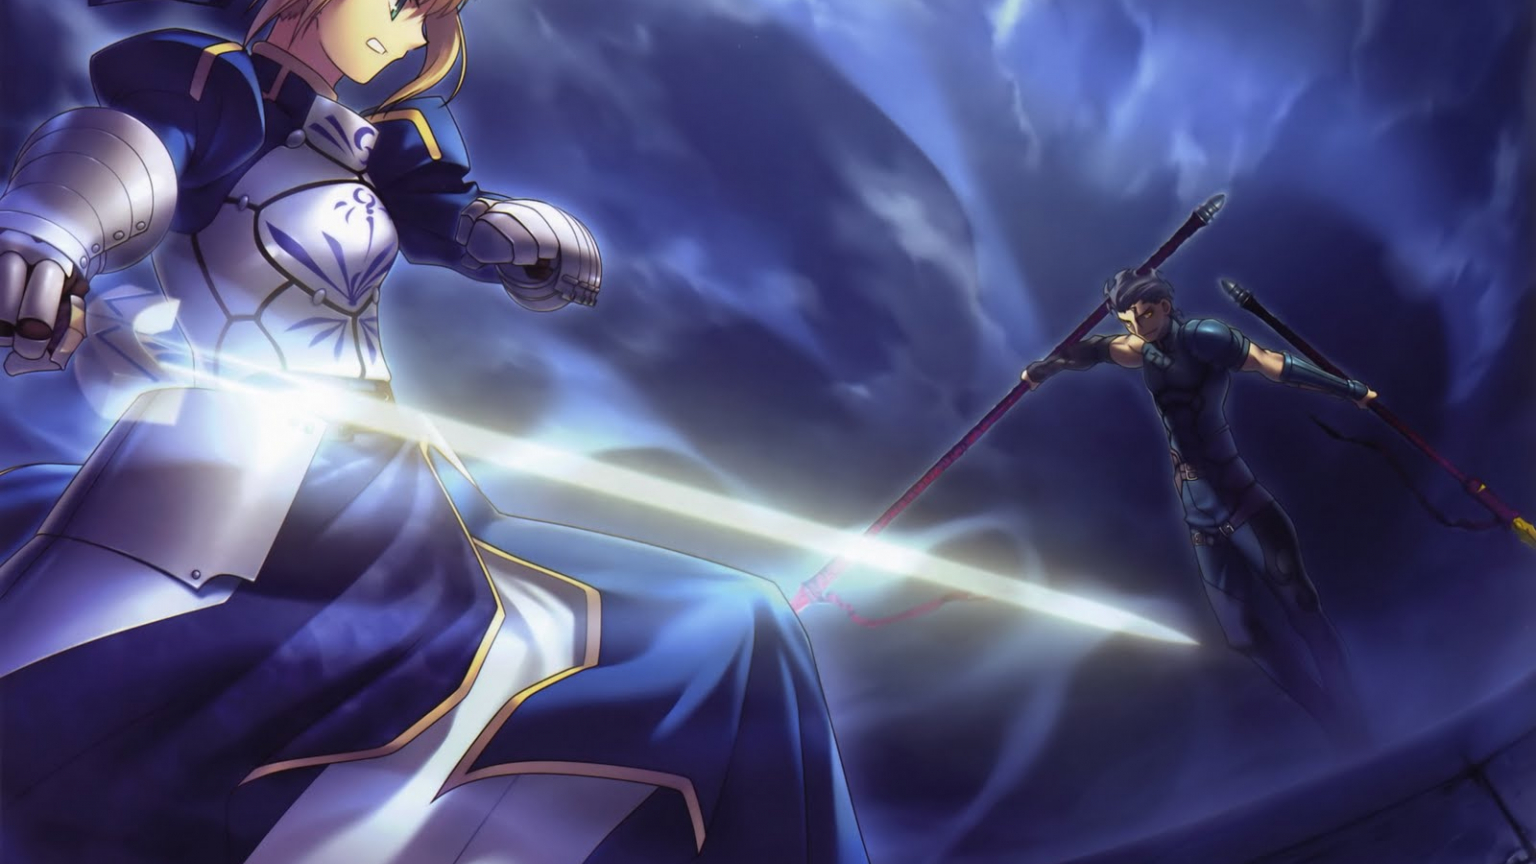 Free Download Saberlancer Fate Zeroanime Wallpaper 1600x1229 For